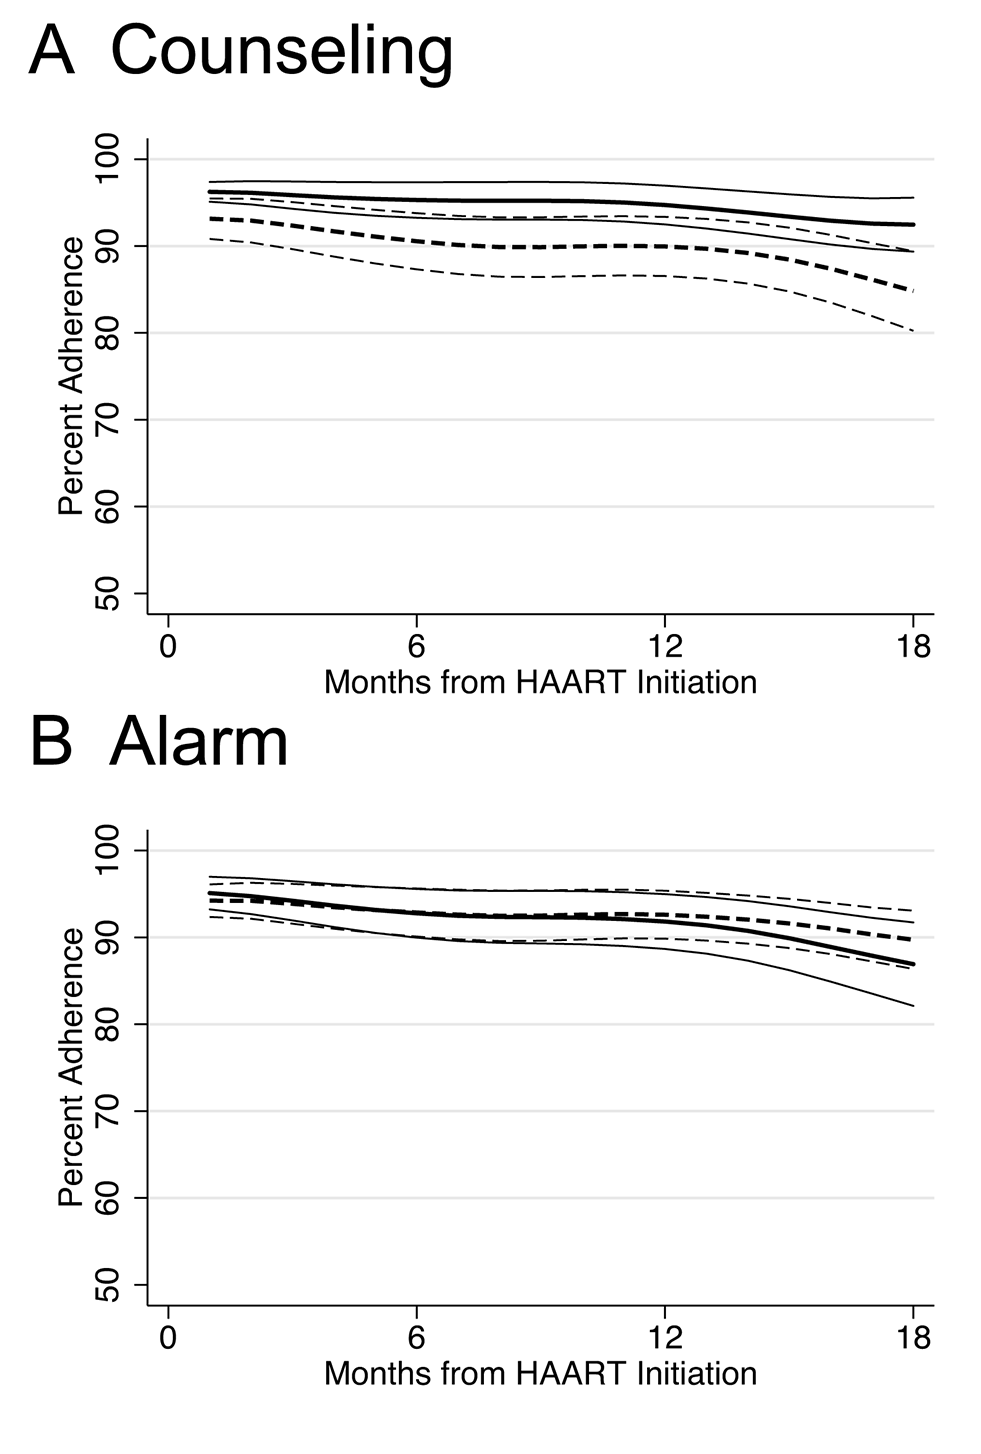 Lowess curves of percent adherence over time in months since HAART initiation by intervention.